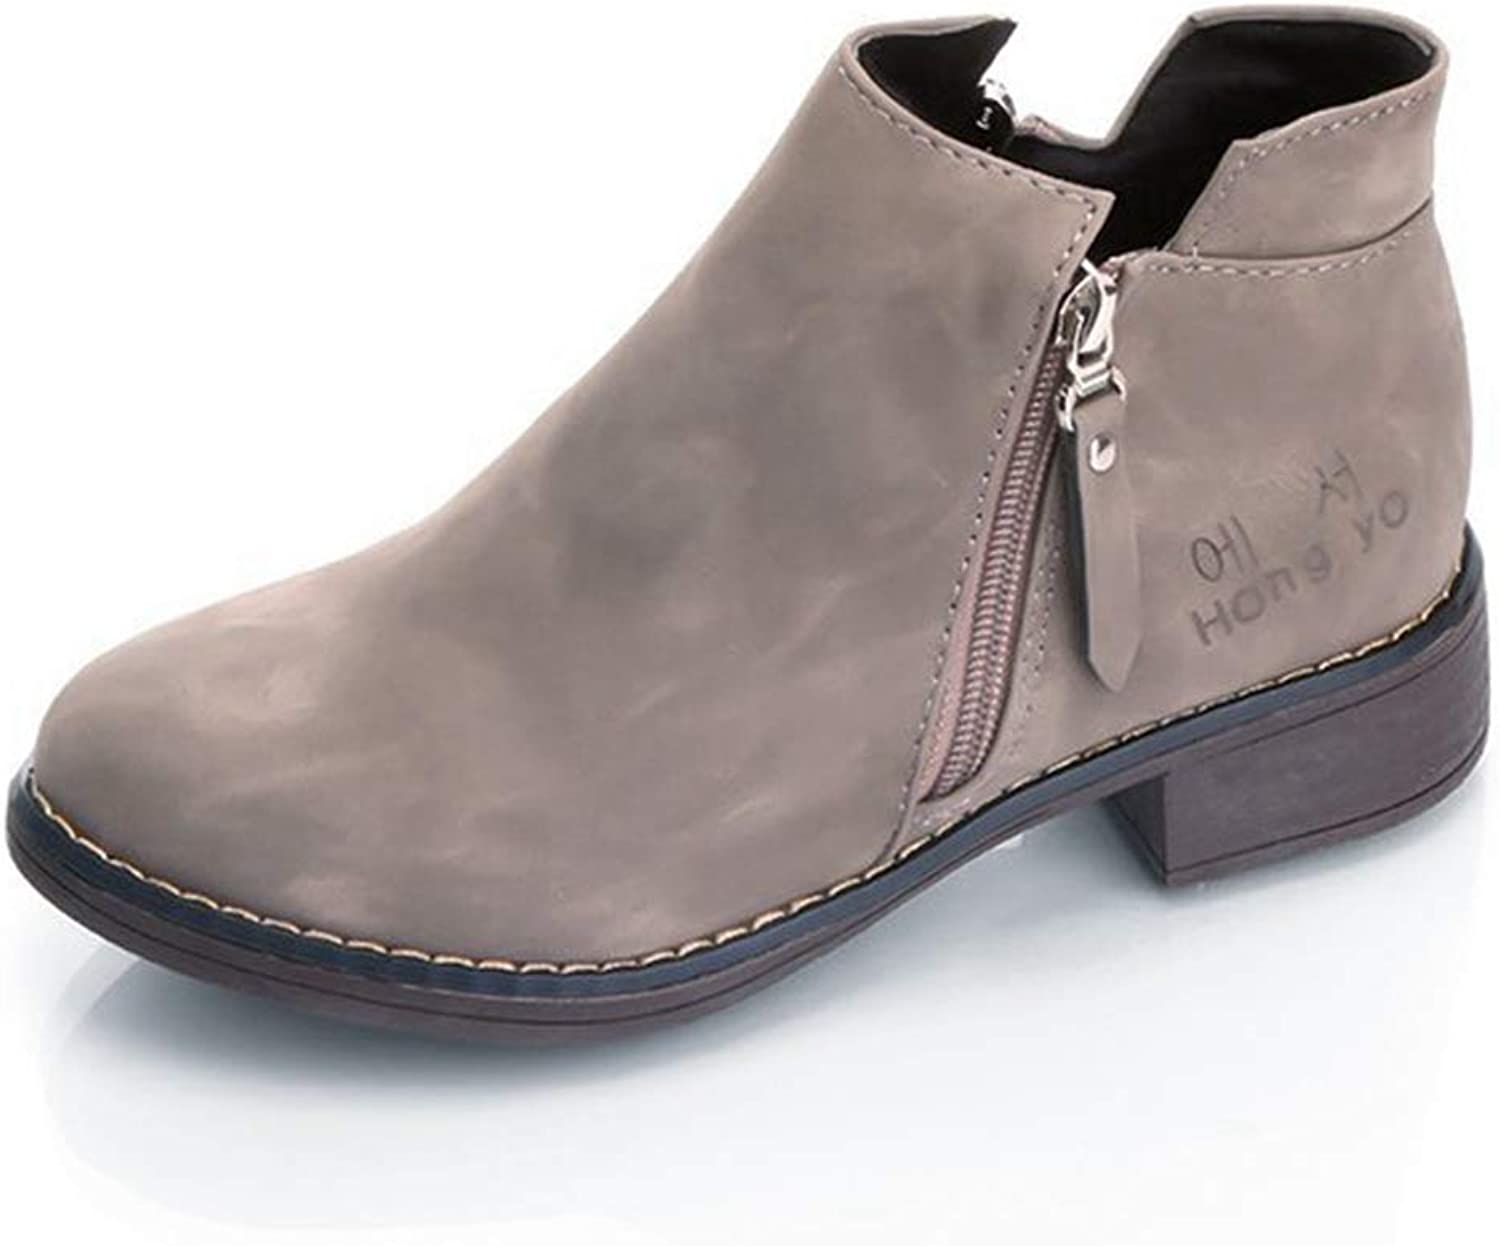 CYBLING Ankle Boots for Women Winter Low Heel Western Side Zipper Round Toe Solid color Suede